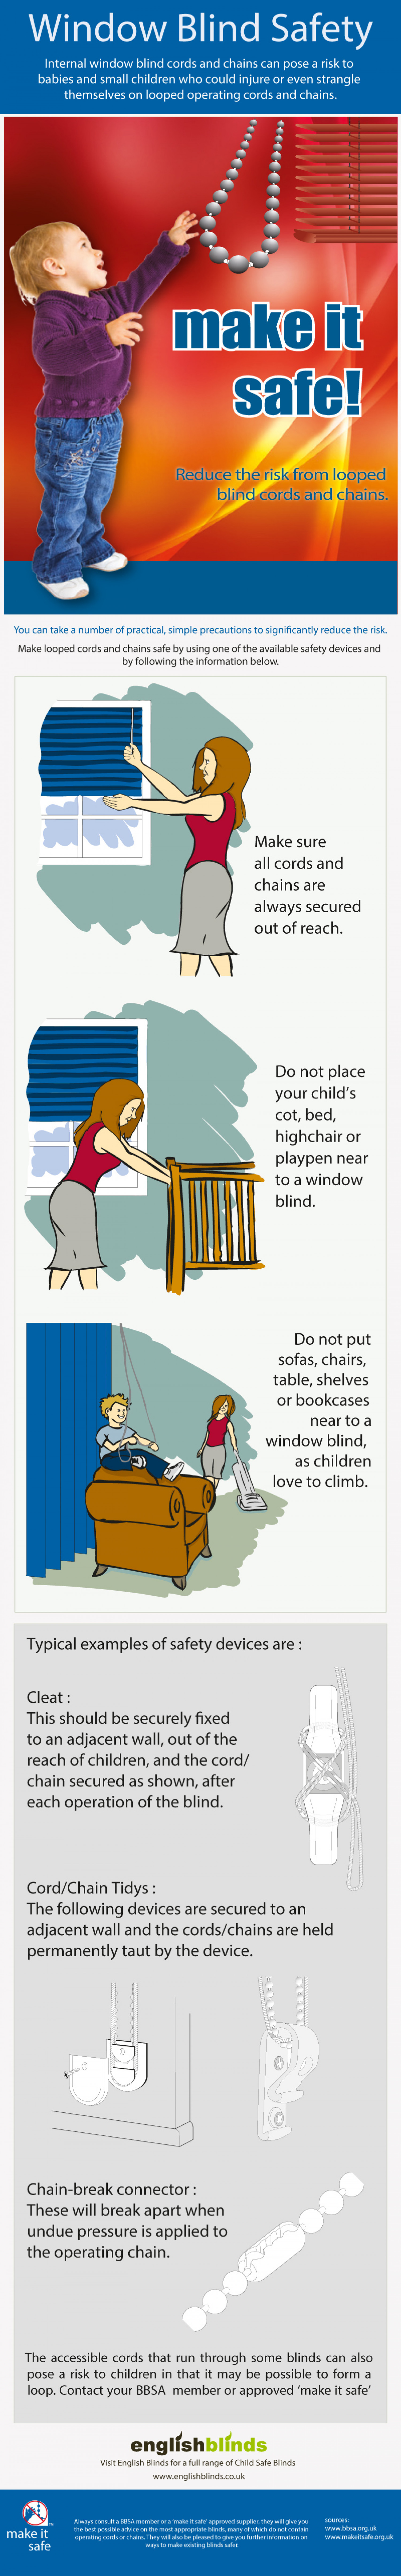 Window Blinds and Shades Child Safety Infographic